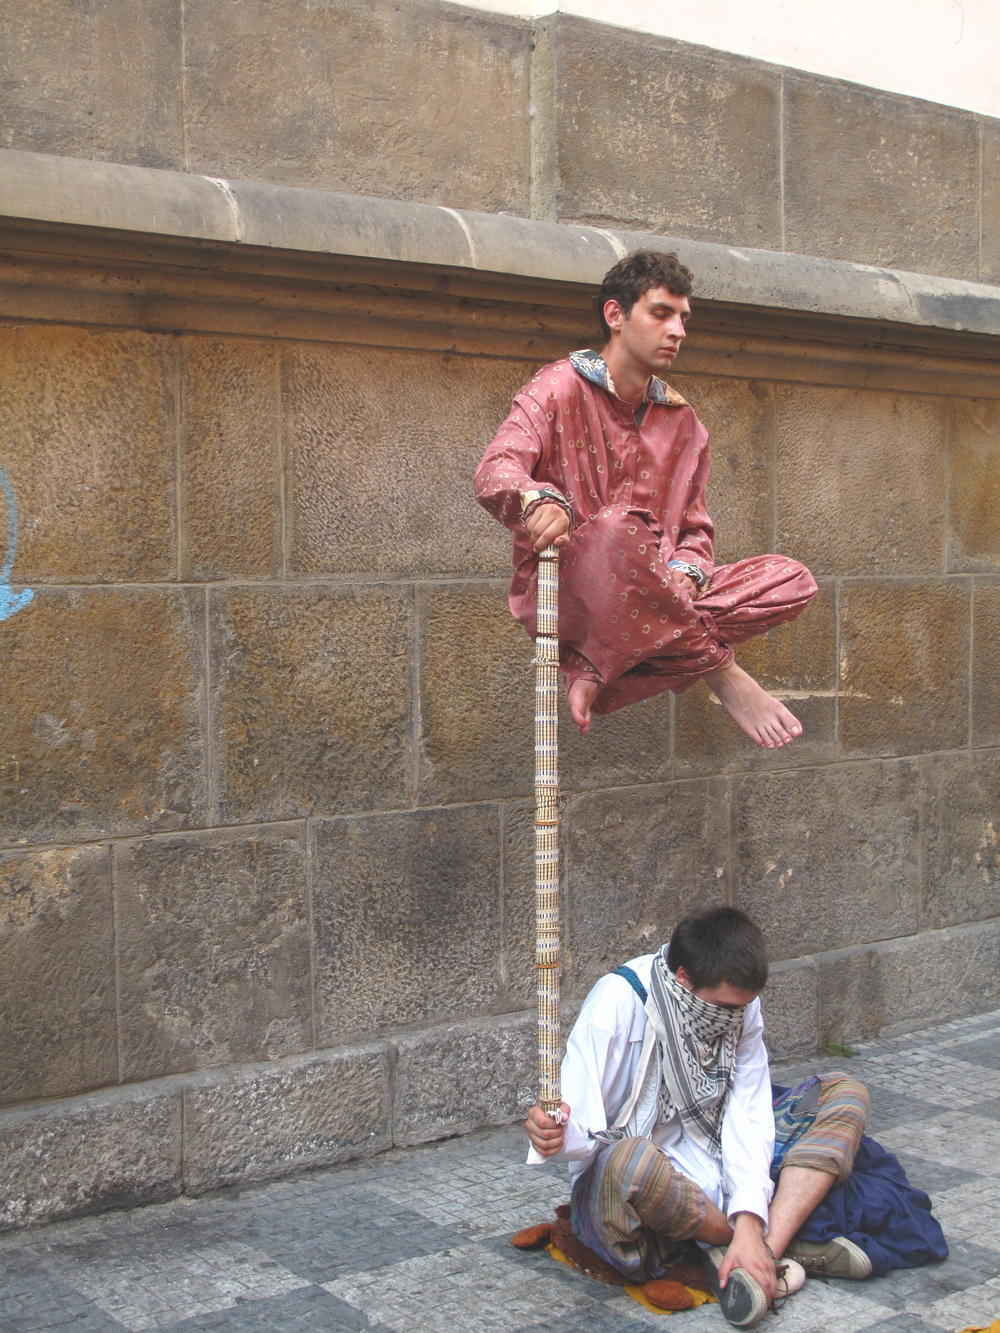 Buskers and magicians on the streets of Prague, performing levitation trick.